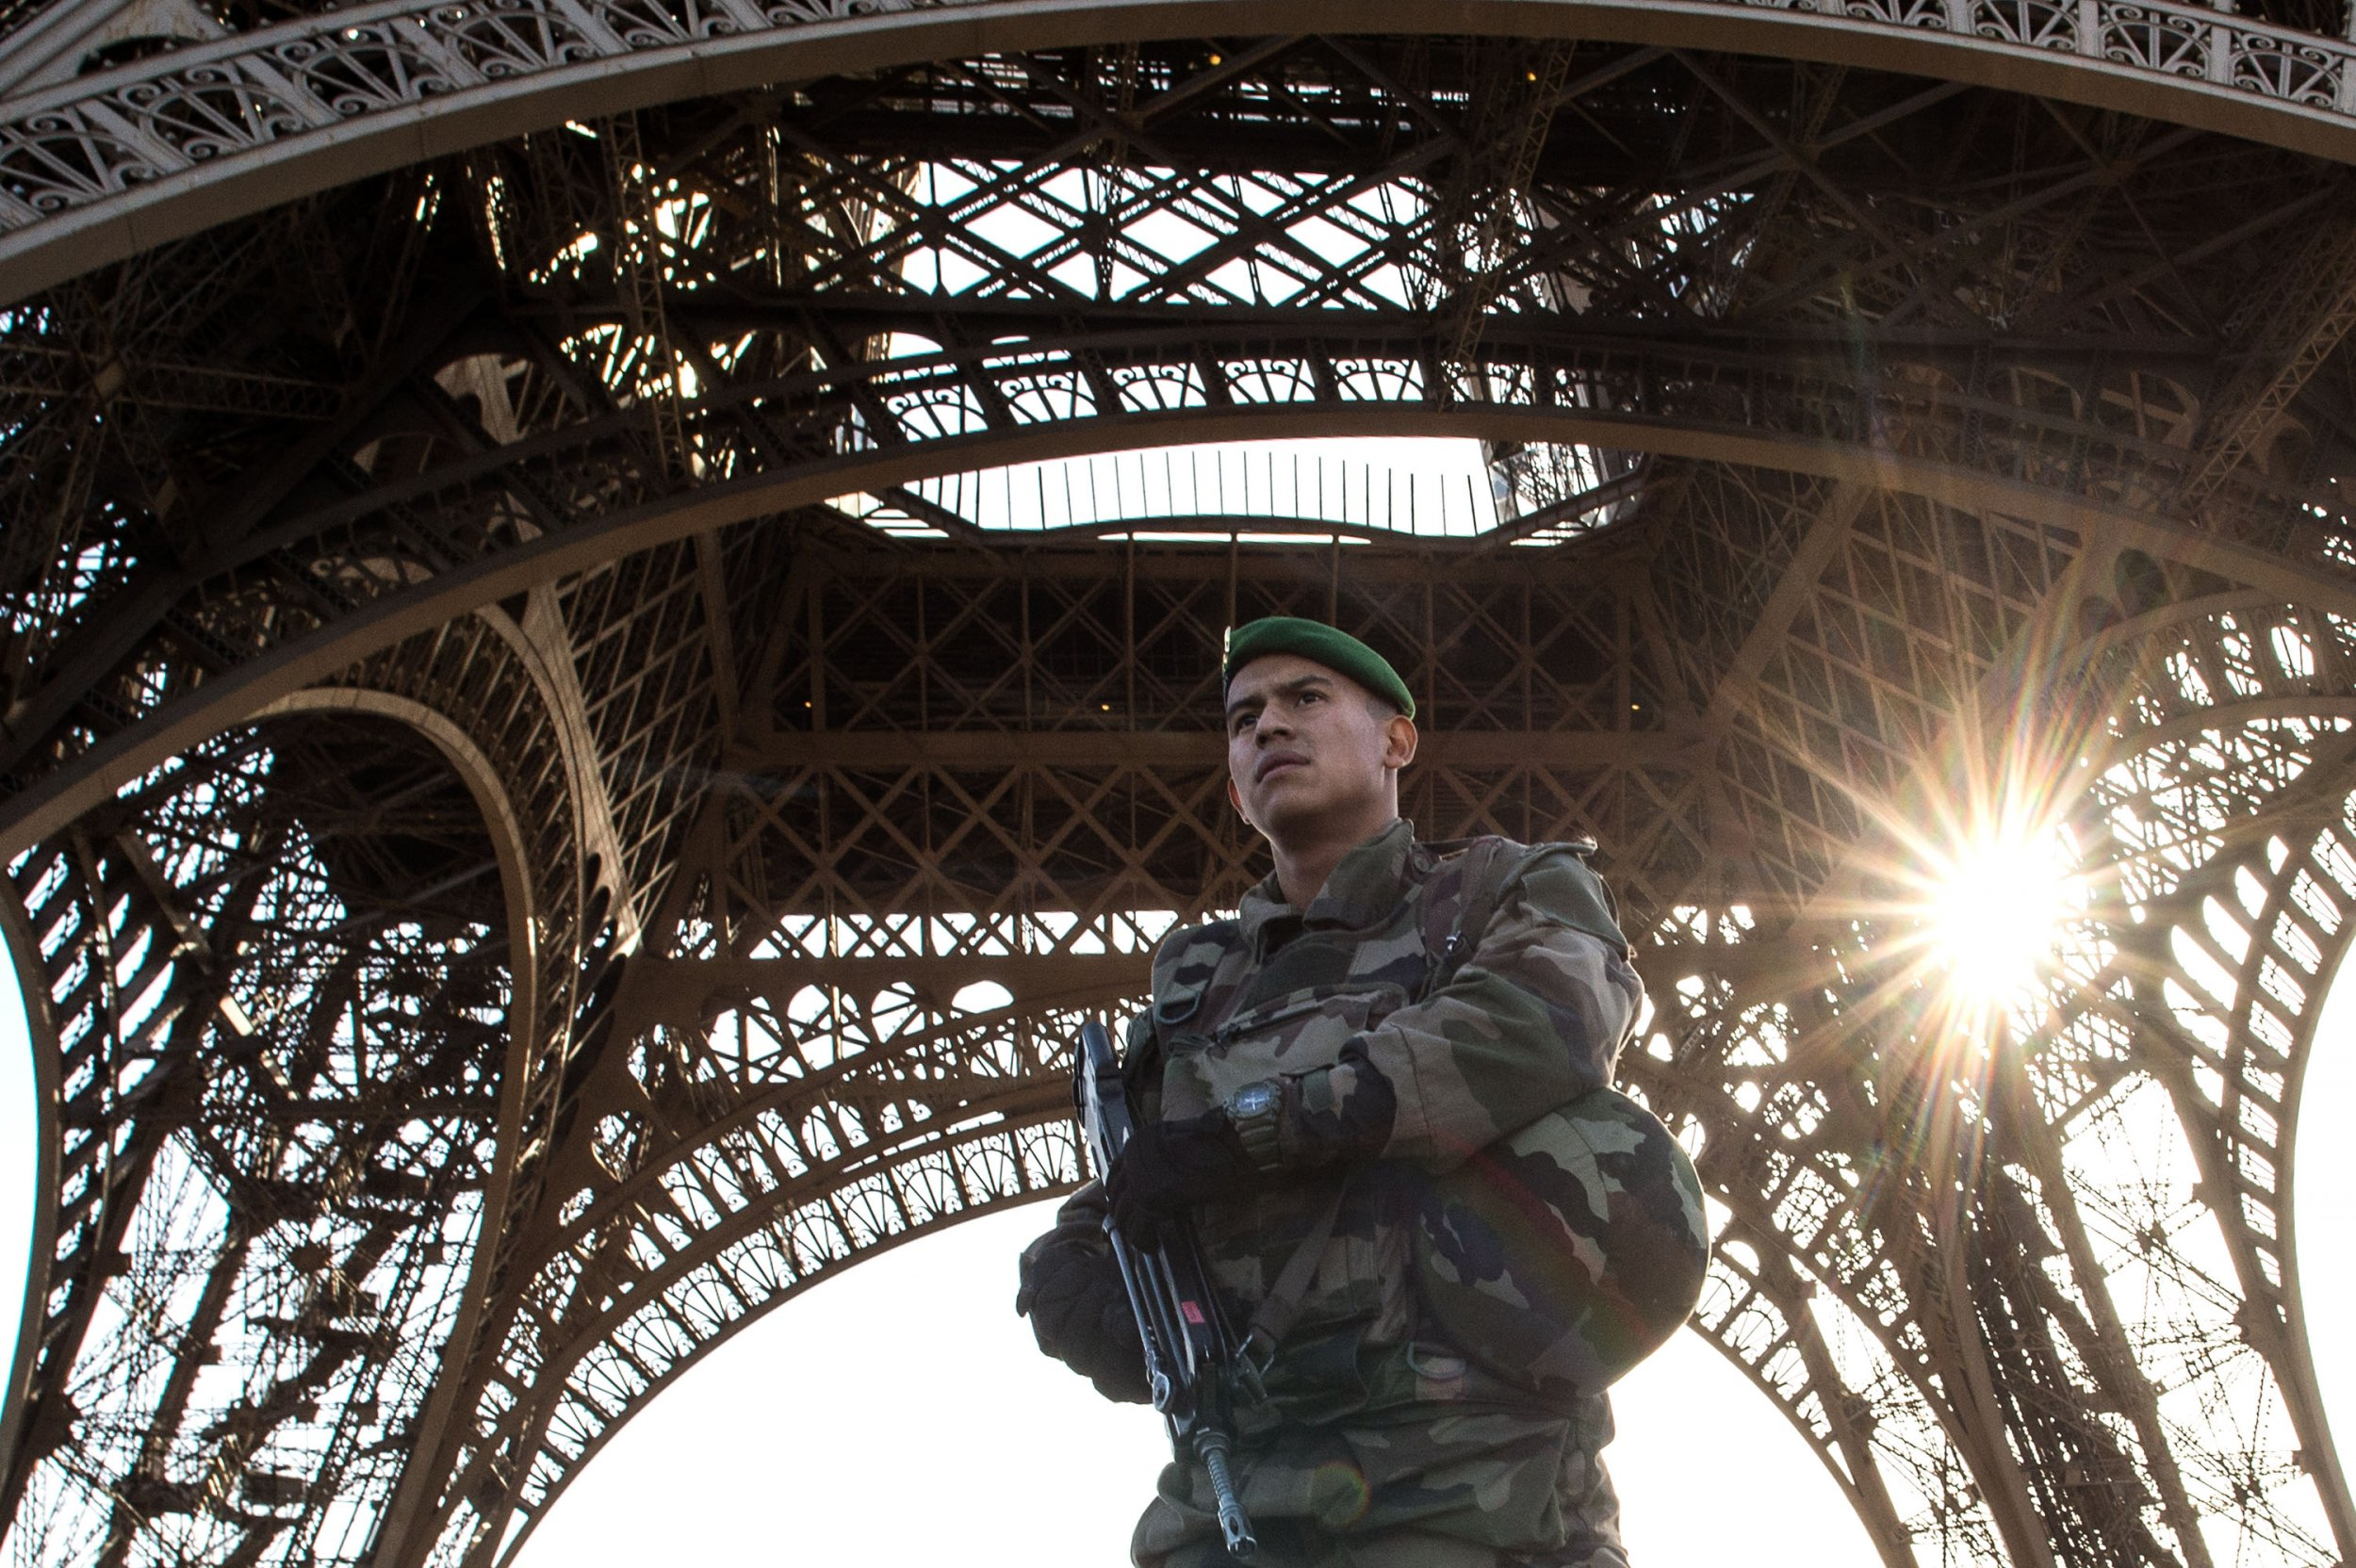 Paris Attacks France Eiffel